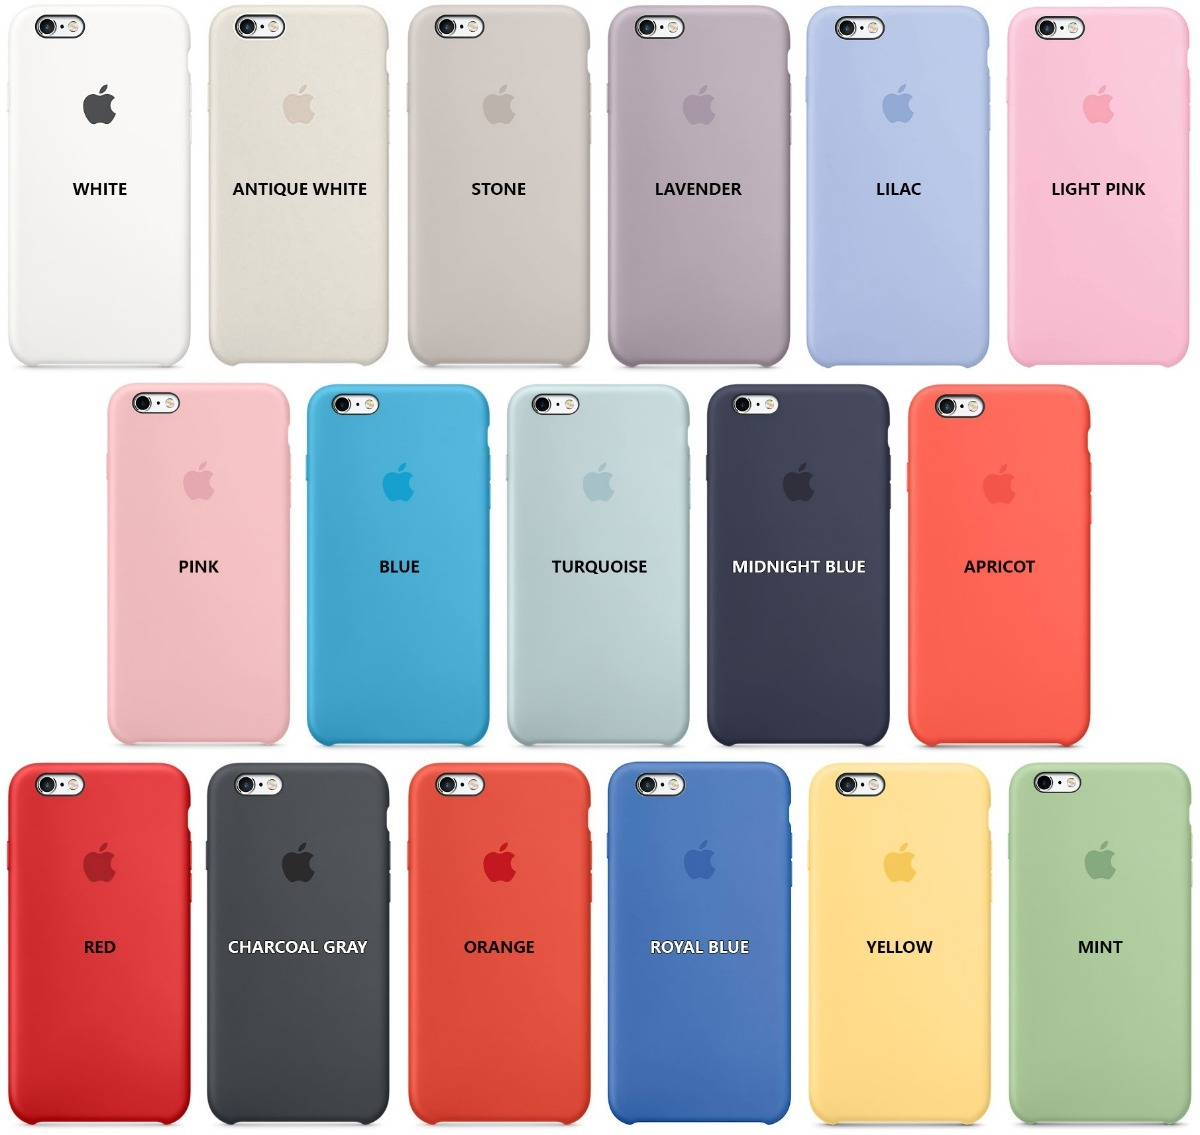 Funda Iphone 5 6 6s Plus Apple Original Silicona Soft Centro!